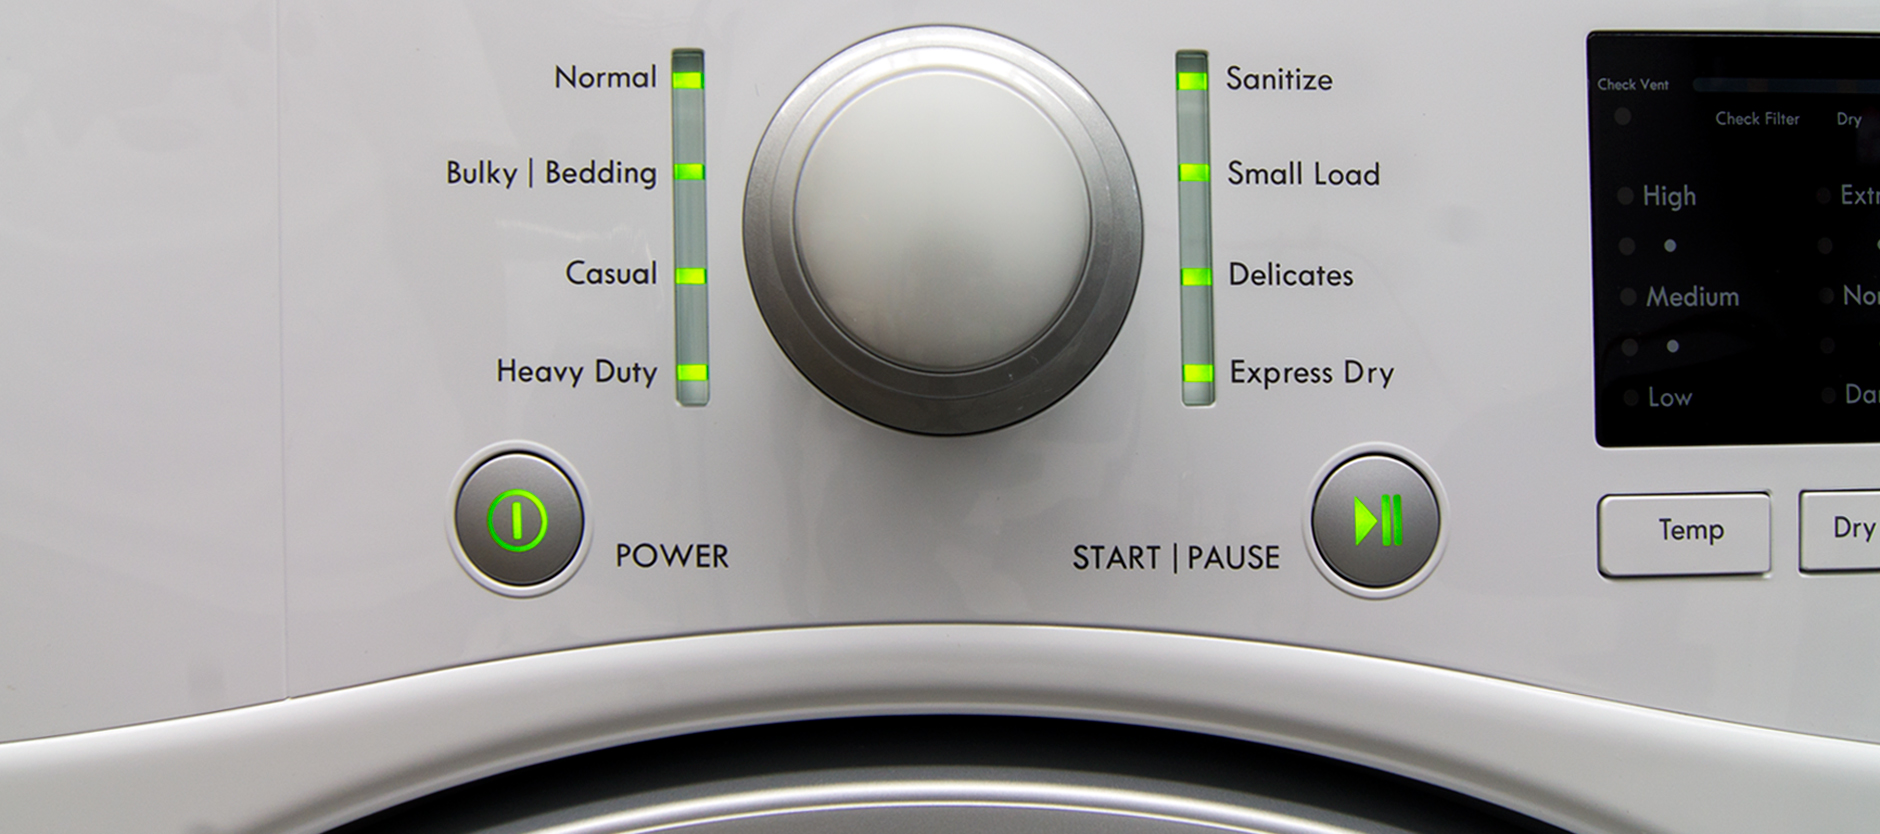 Best Top Loading Washing Machine >> Kenmore 81182 Dryer Review - Reviewed.com Laundry